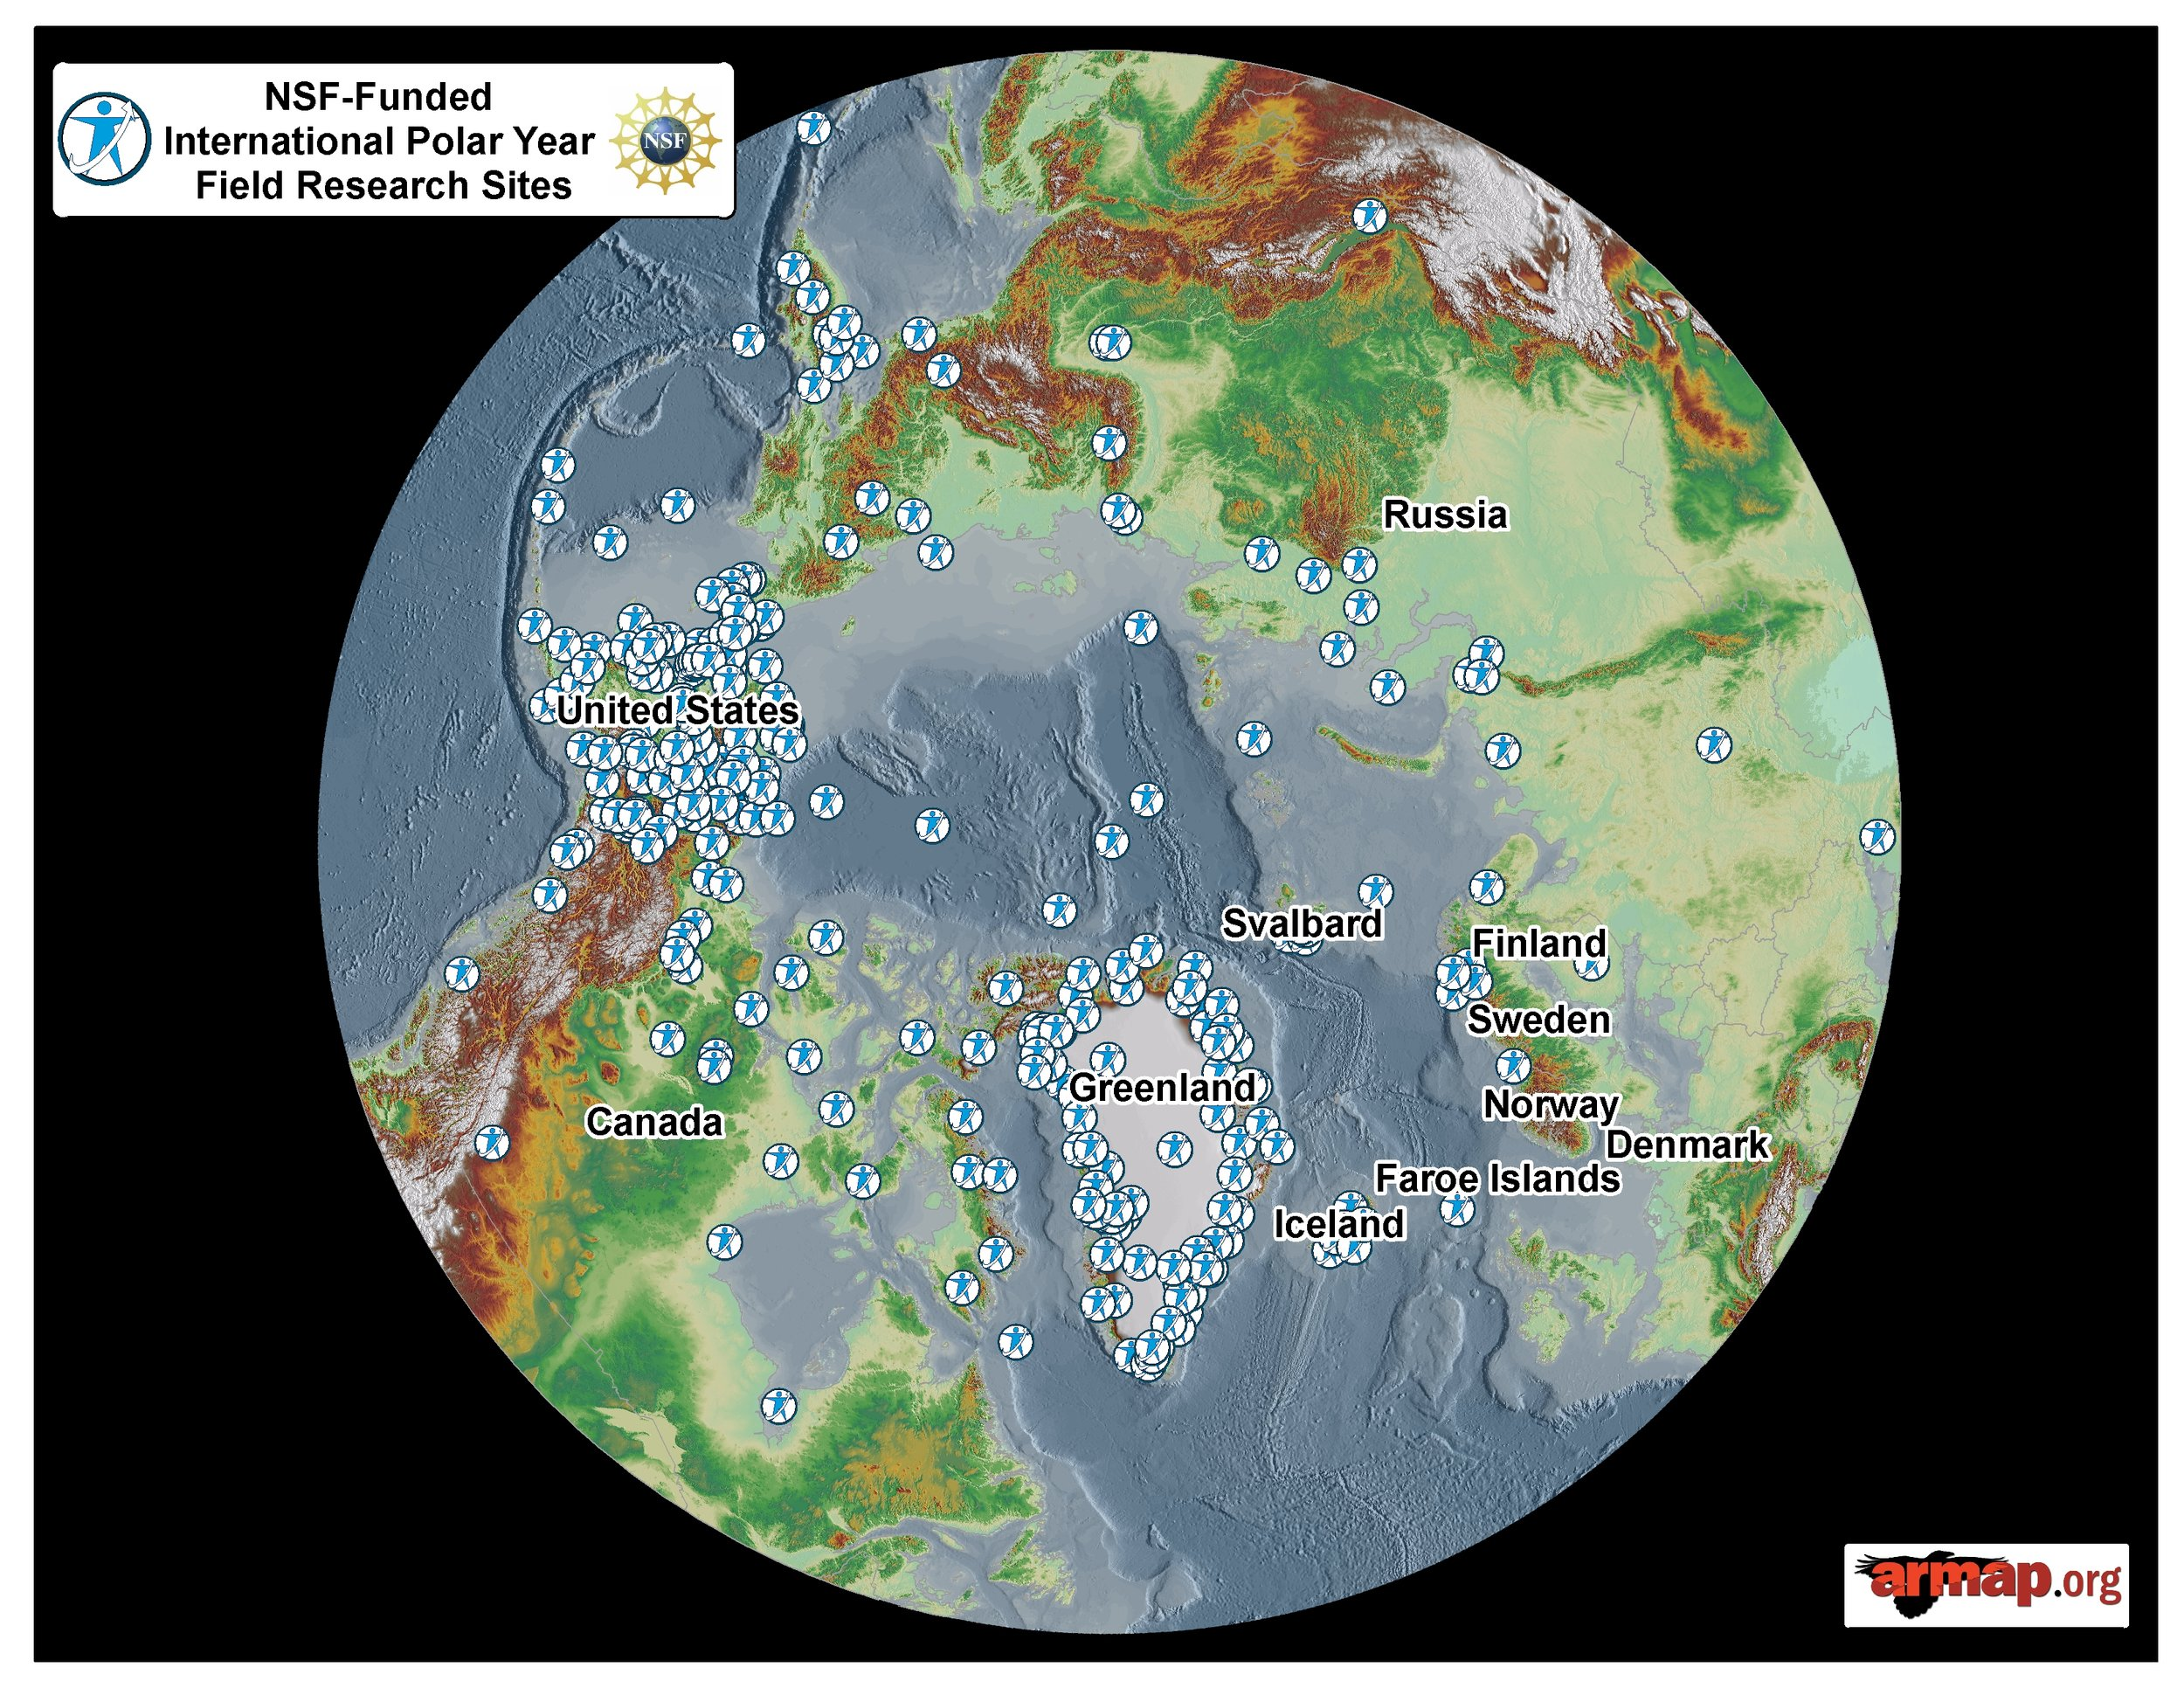 Dr. Erb presented this ARMAP image showing the location of NSF-funded International Polar Year research at a recent Greenland conference. Source: ARMAP